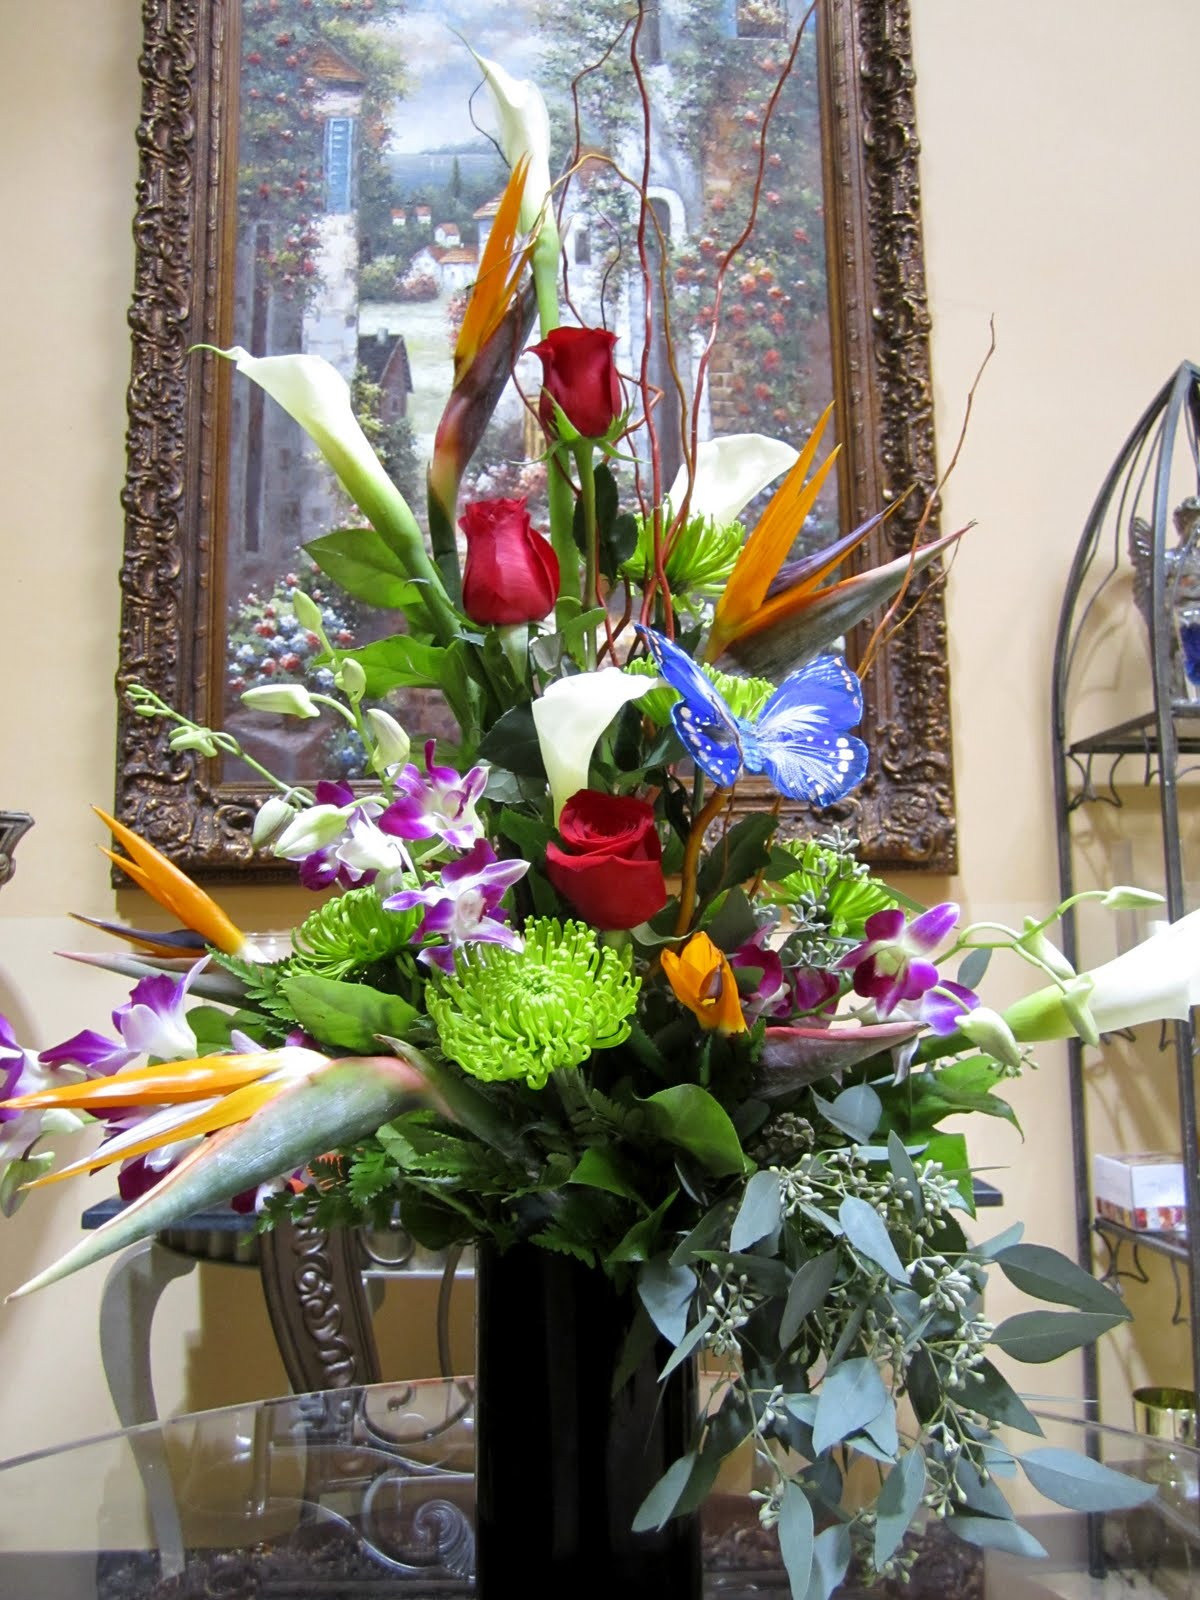 Bernardo S Flowers Masculine Flower Arrangement